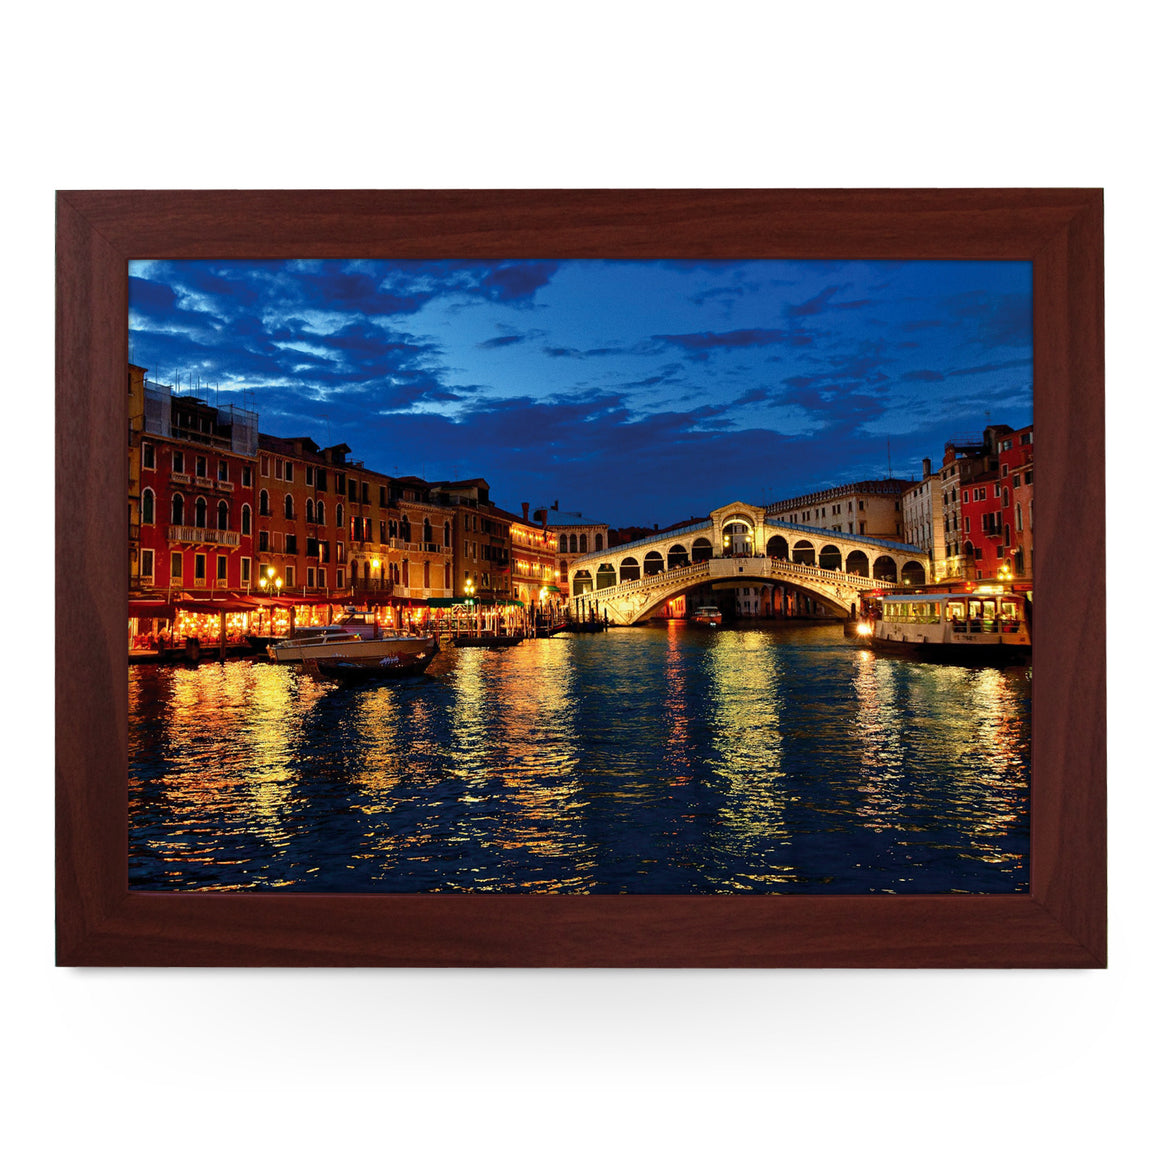 Venice Rial to Bridge Lap Tray - L0071